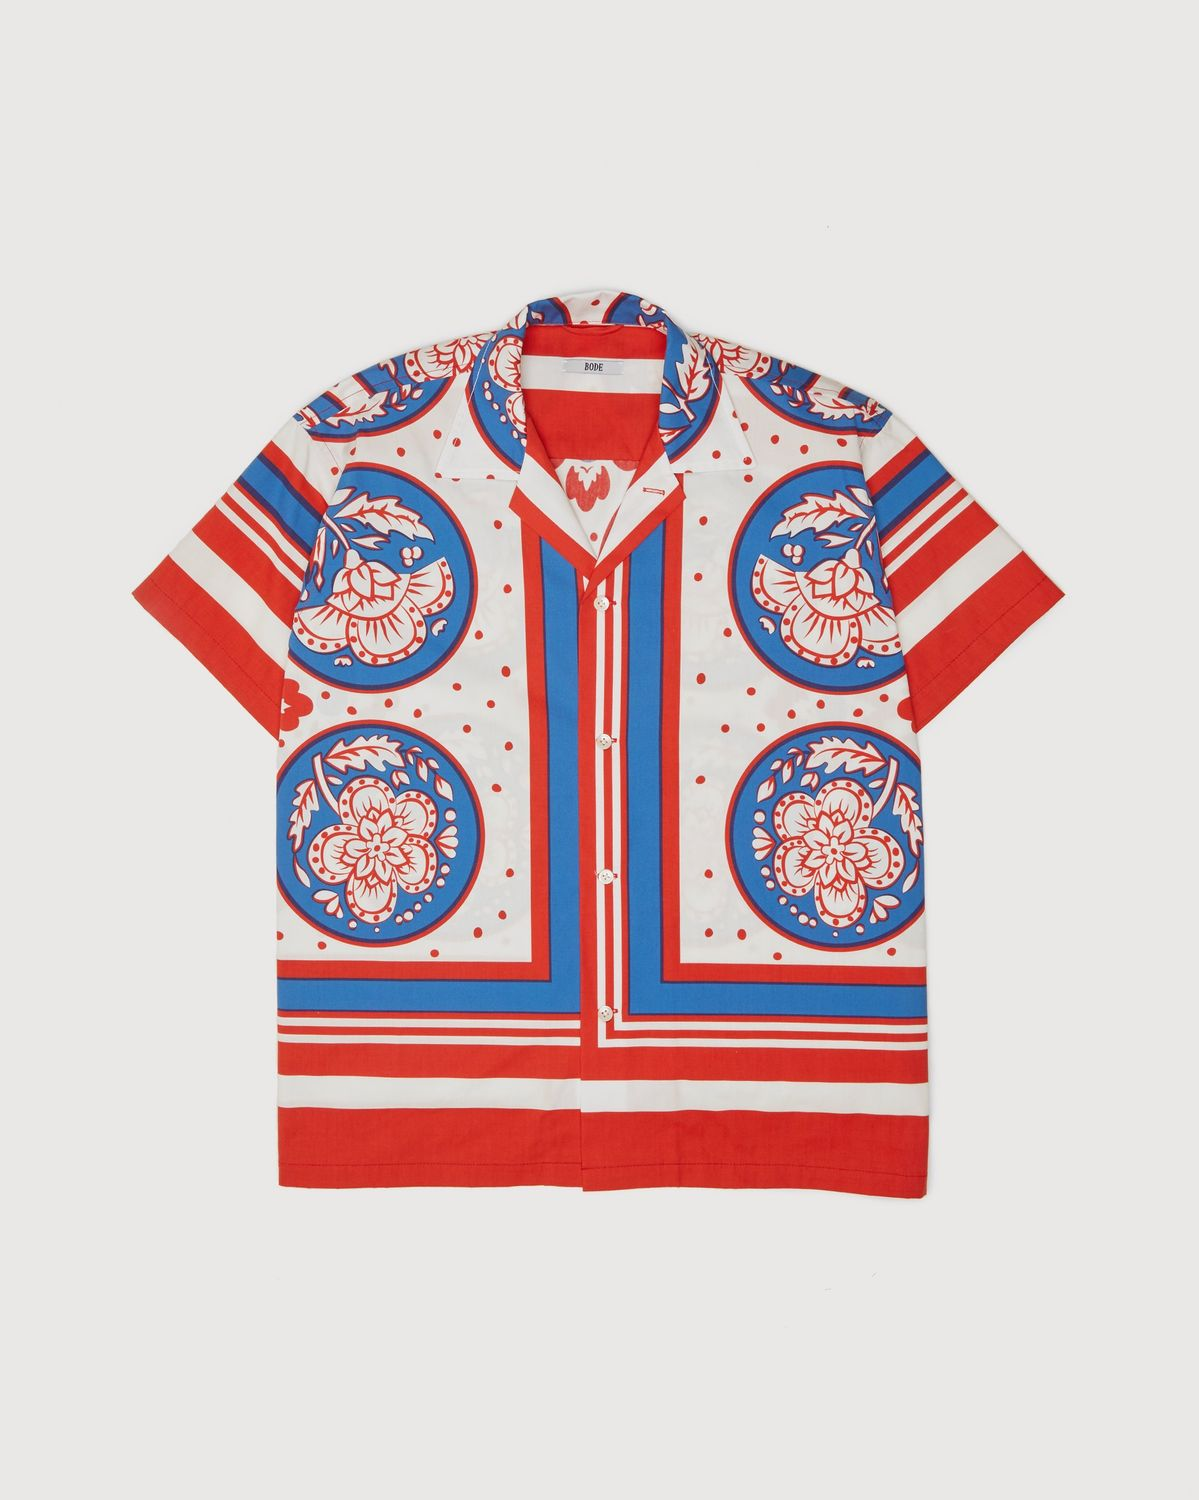 BODE - Oversized Block Print Shirt Blue Red - Image 1